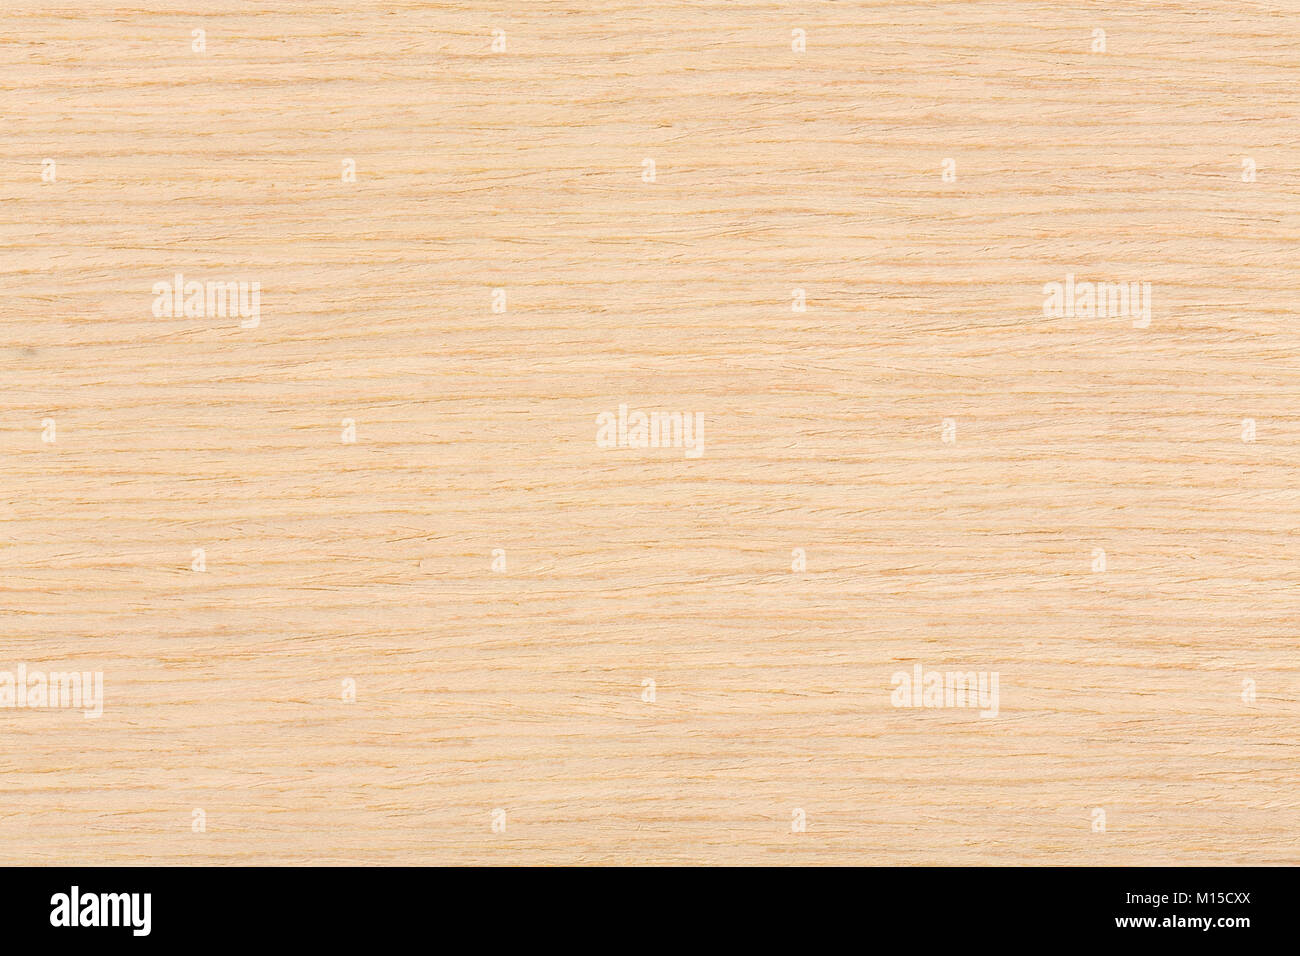 Light Brown Color Stock Photos & Light Brown Color Stock Images - Alamy